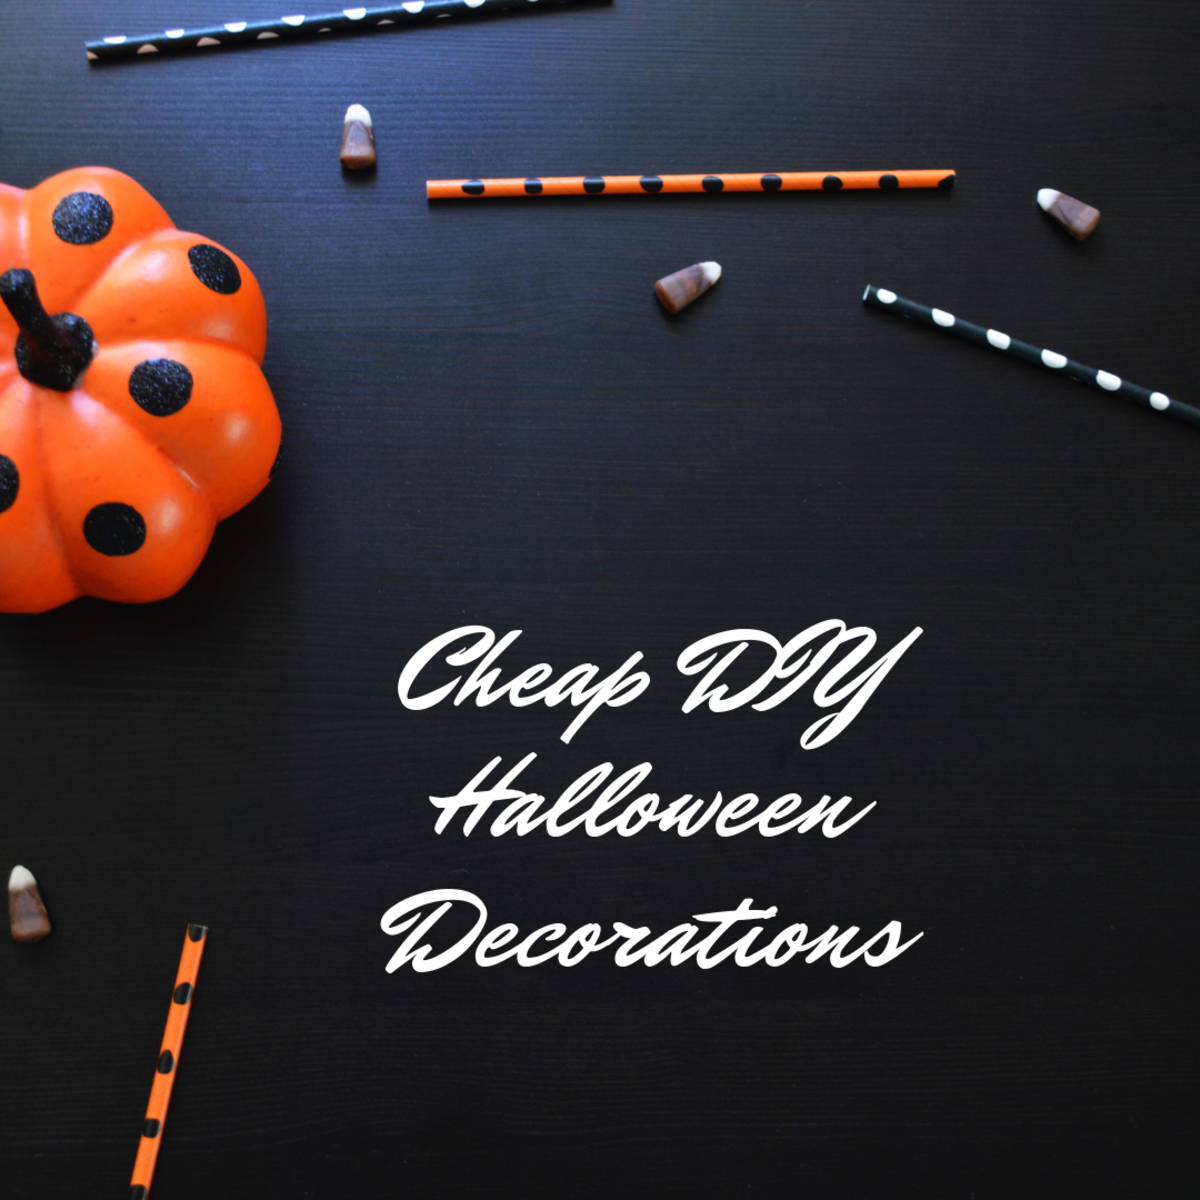 These cheap DIY decorations will make your home look great for Halloween.